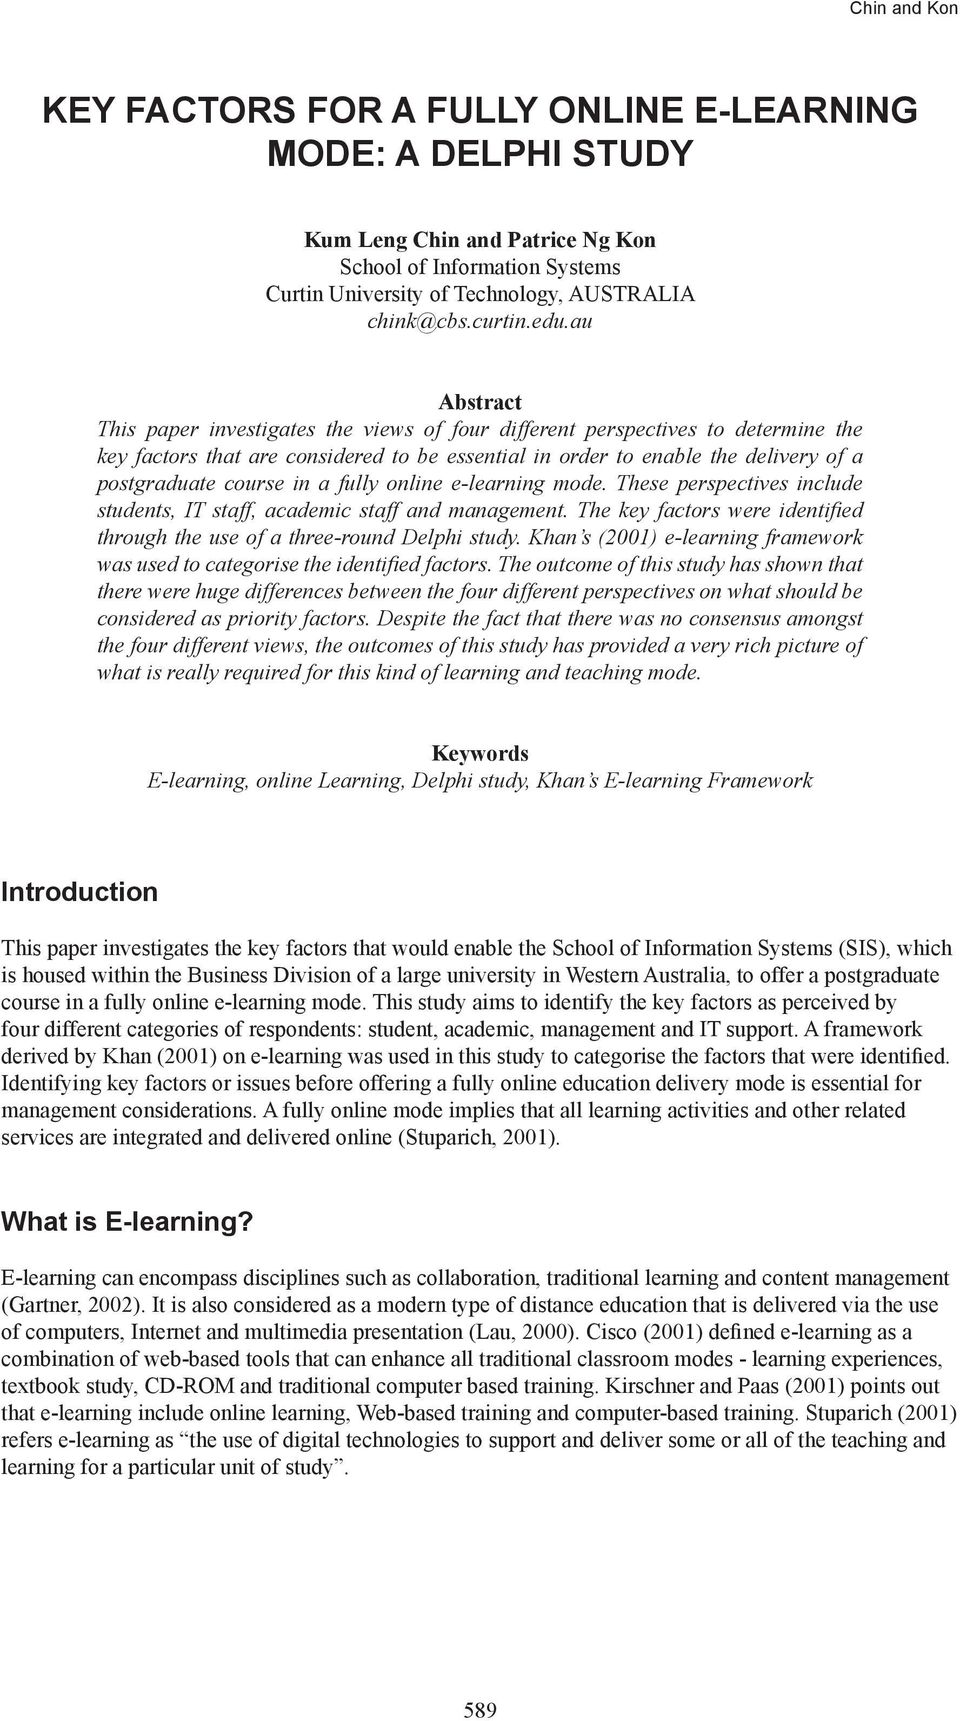 in a fully online e-learning mode. These perspectives include students, IT staff, academic staff and management. The key factors were identified through the use of a three-round Delphi study.